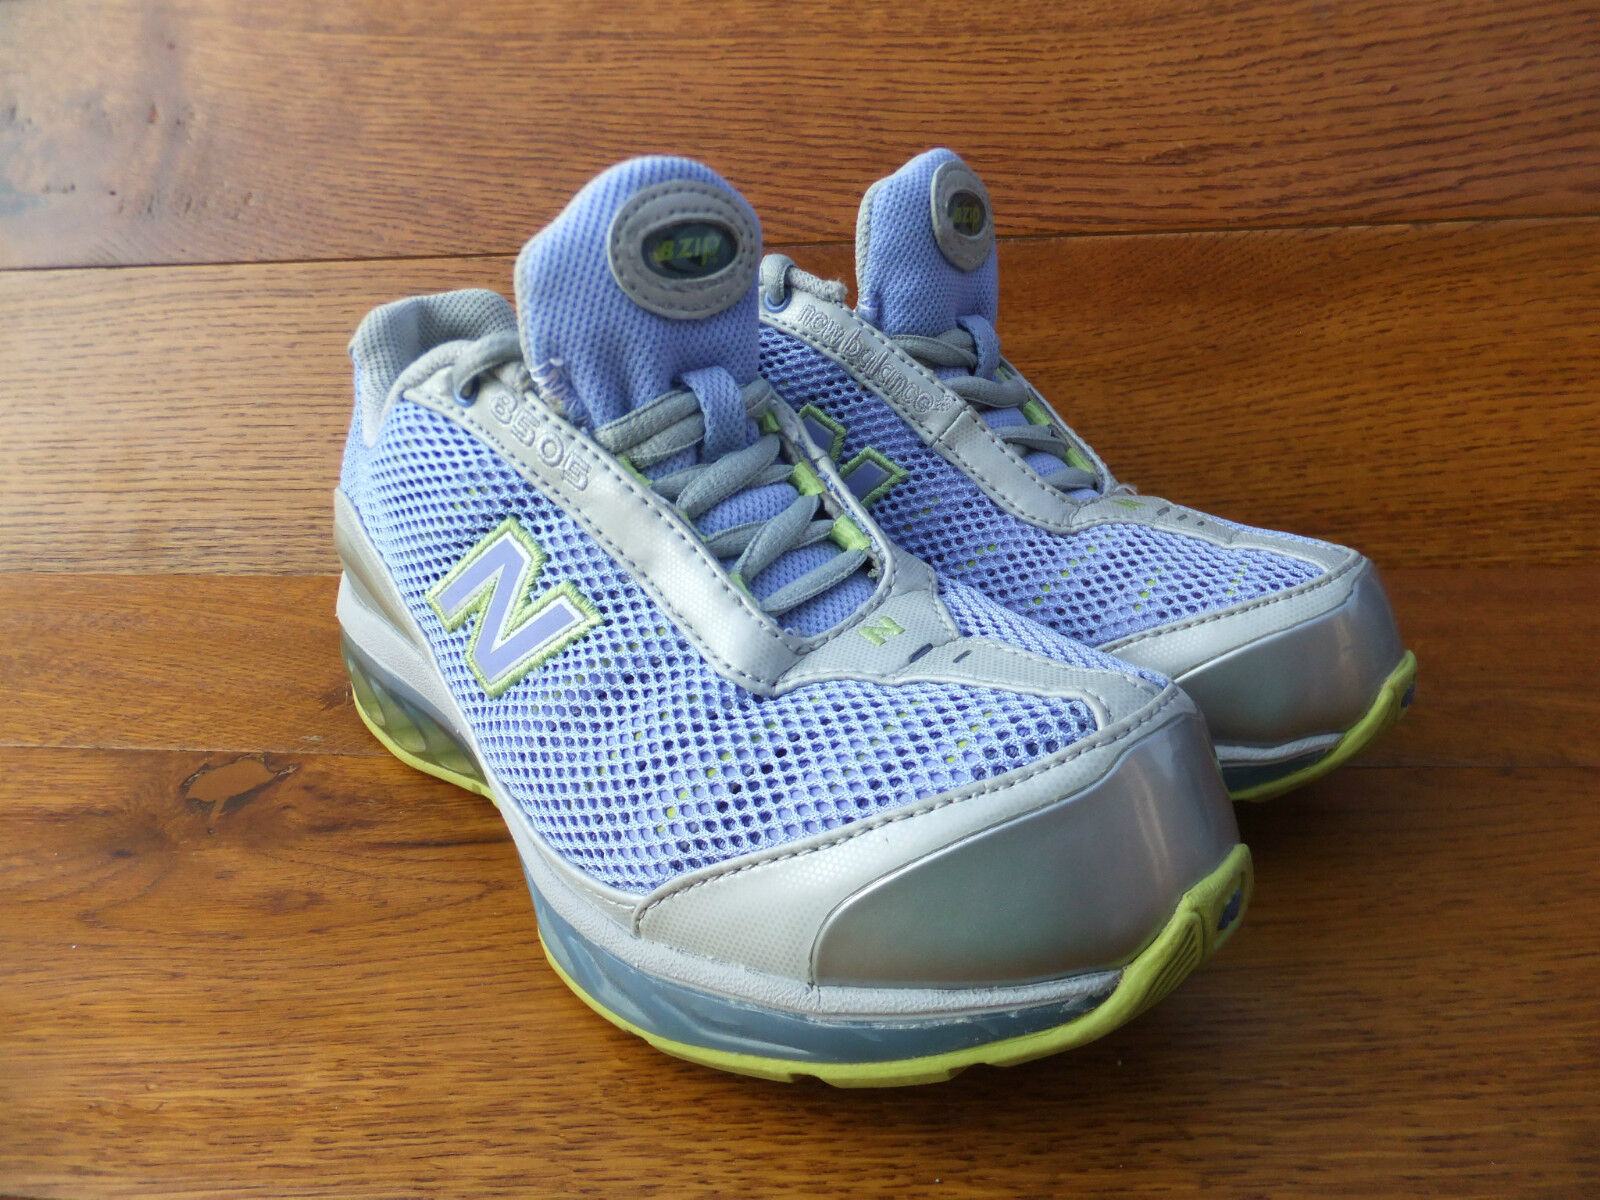 New Shoes Balance 8505 Zip Running Shoes New Fitness Trainers Size 321977